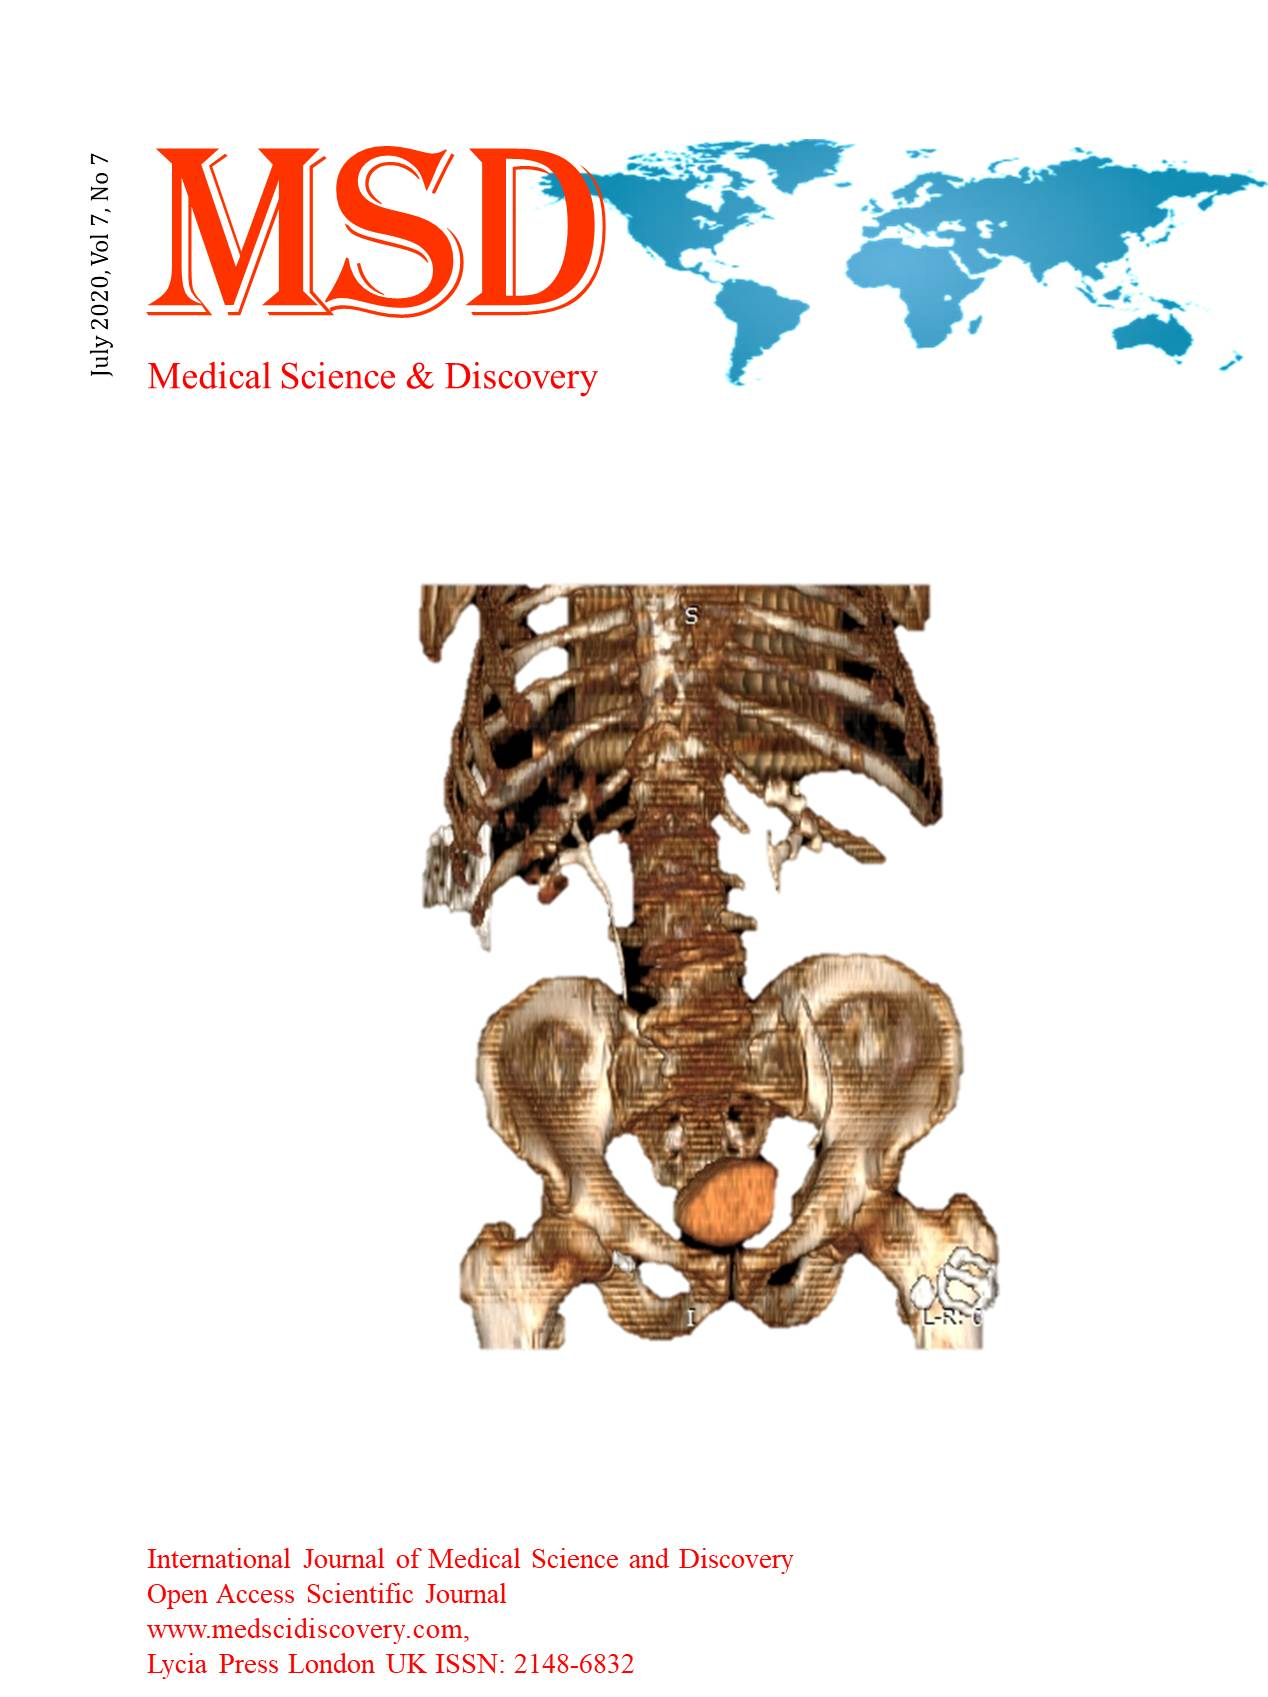 Interntional Journal of Medical Science and Discovery Vol 7 No 7